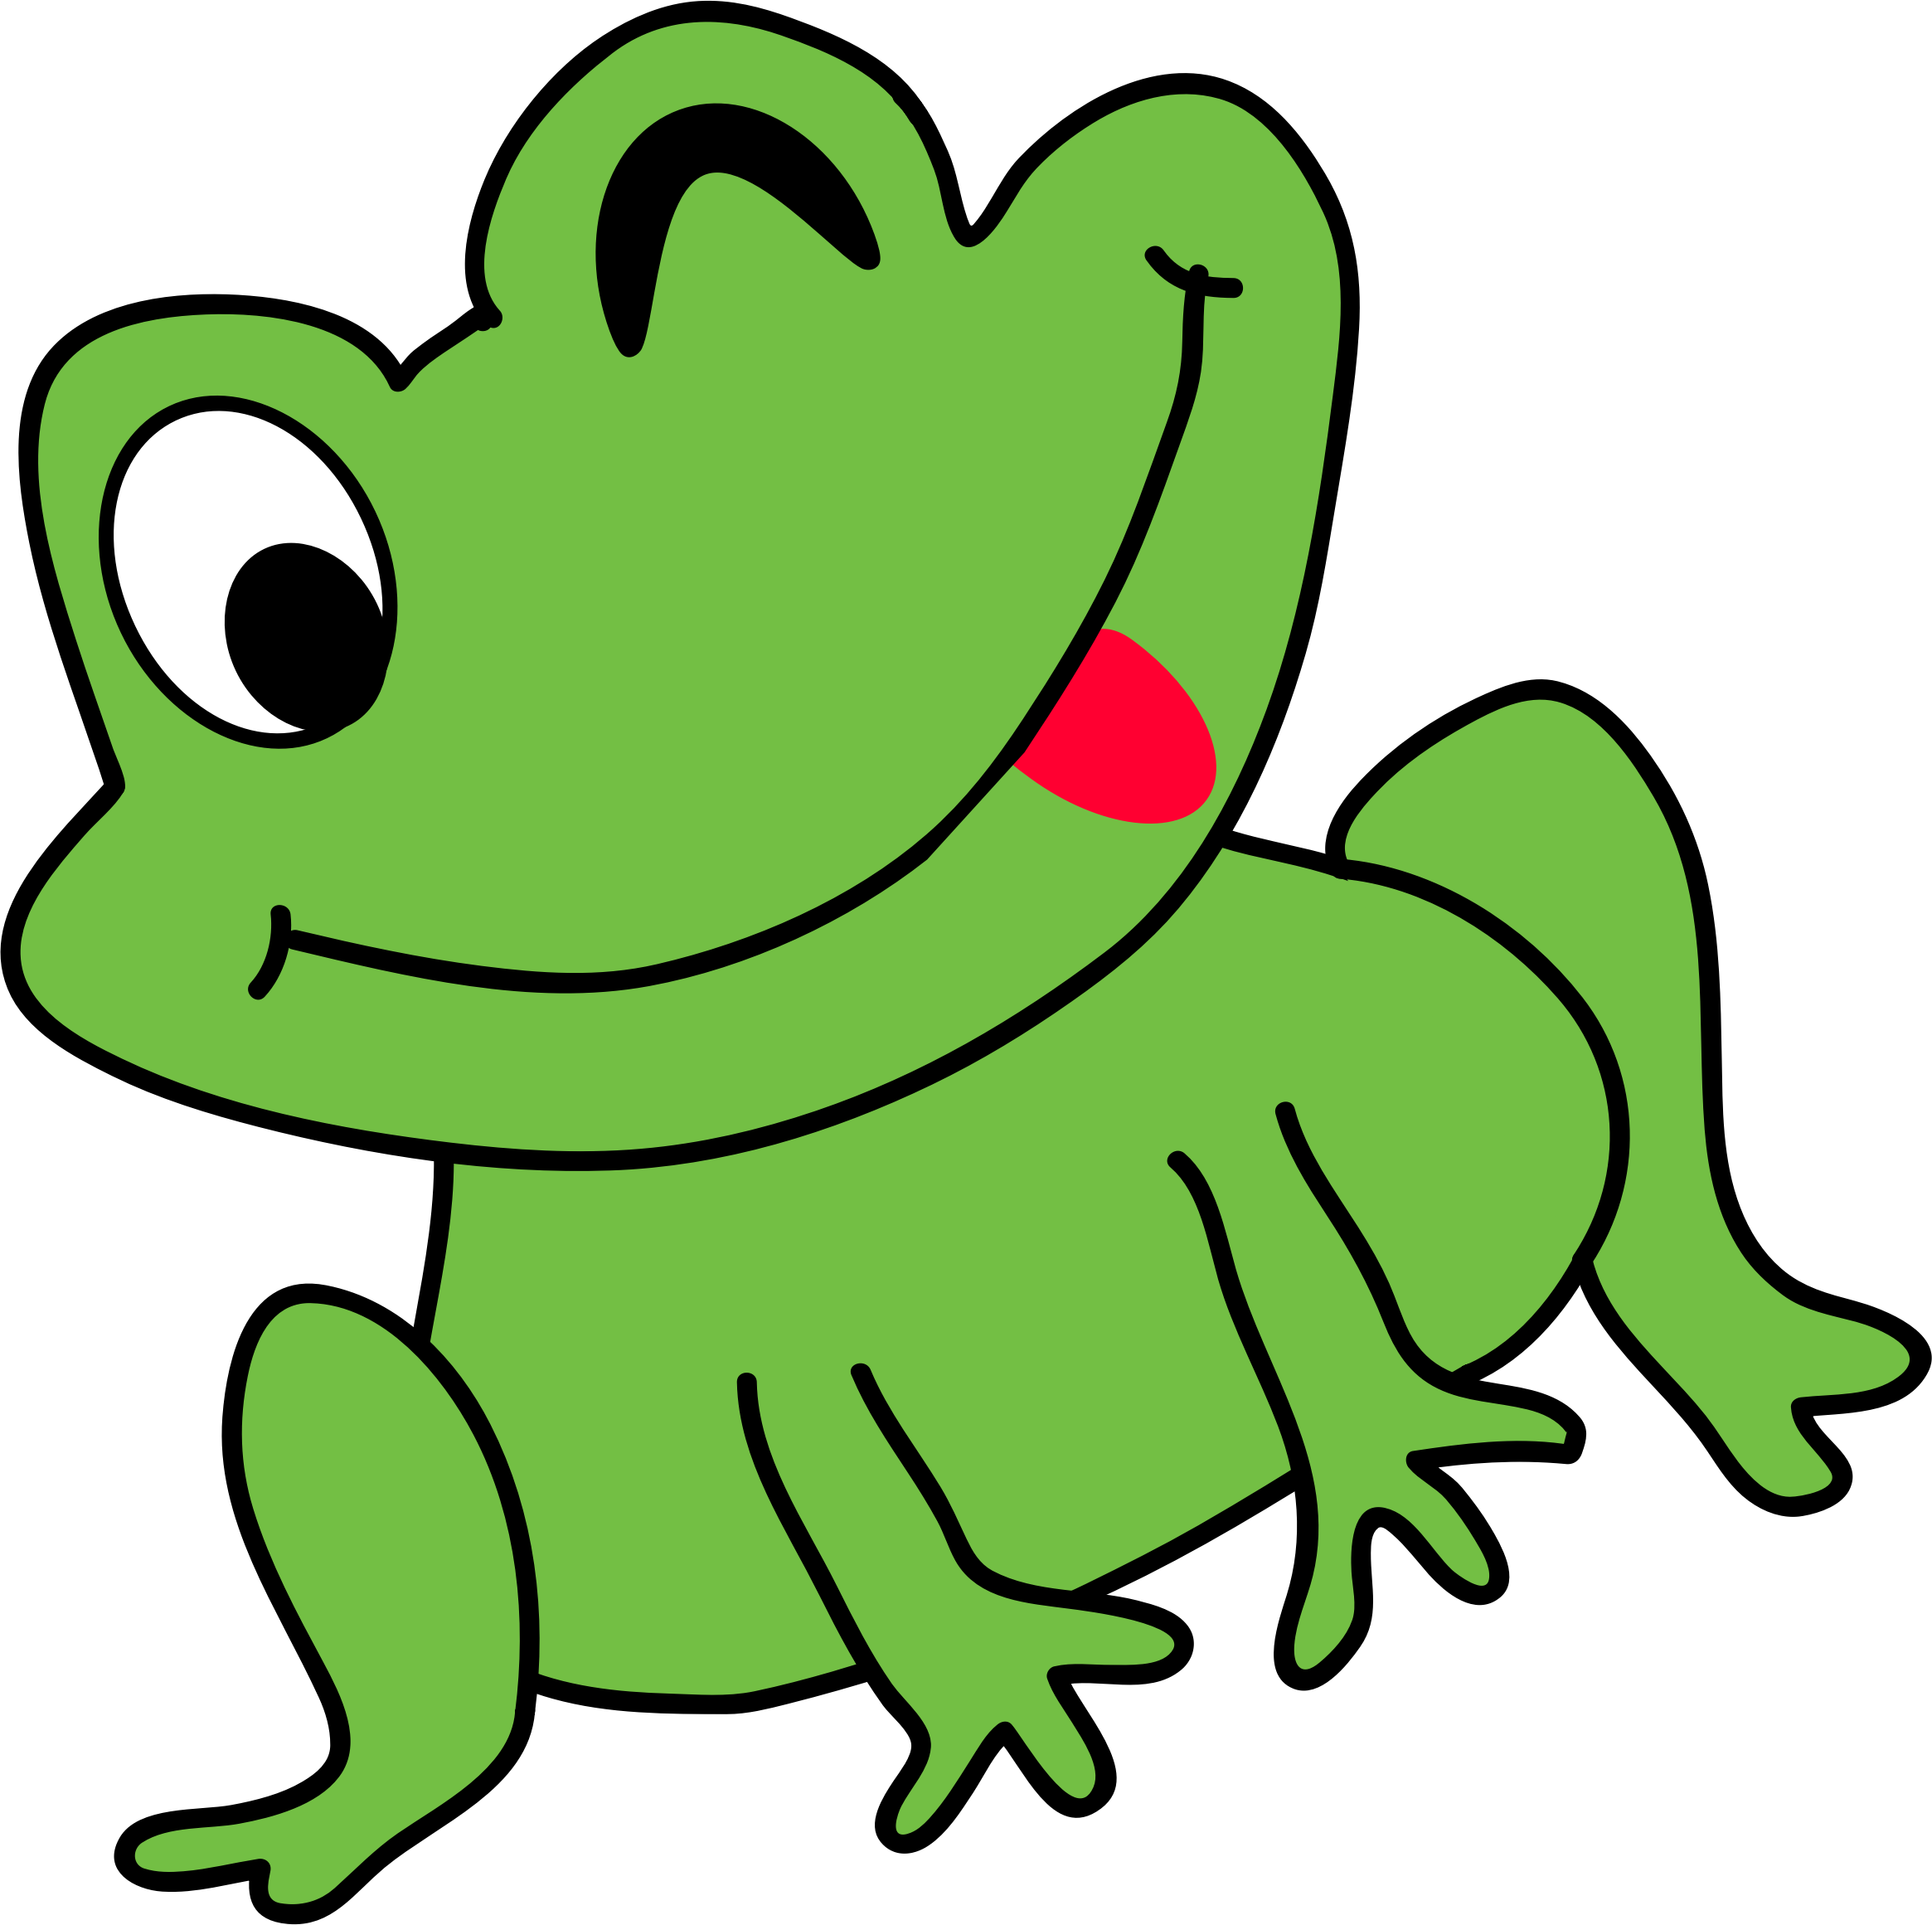 Animated Frog Png & Free Animated Frog.png Transparent ...